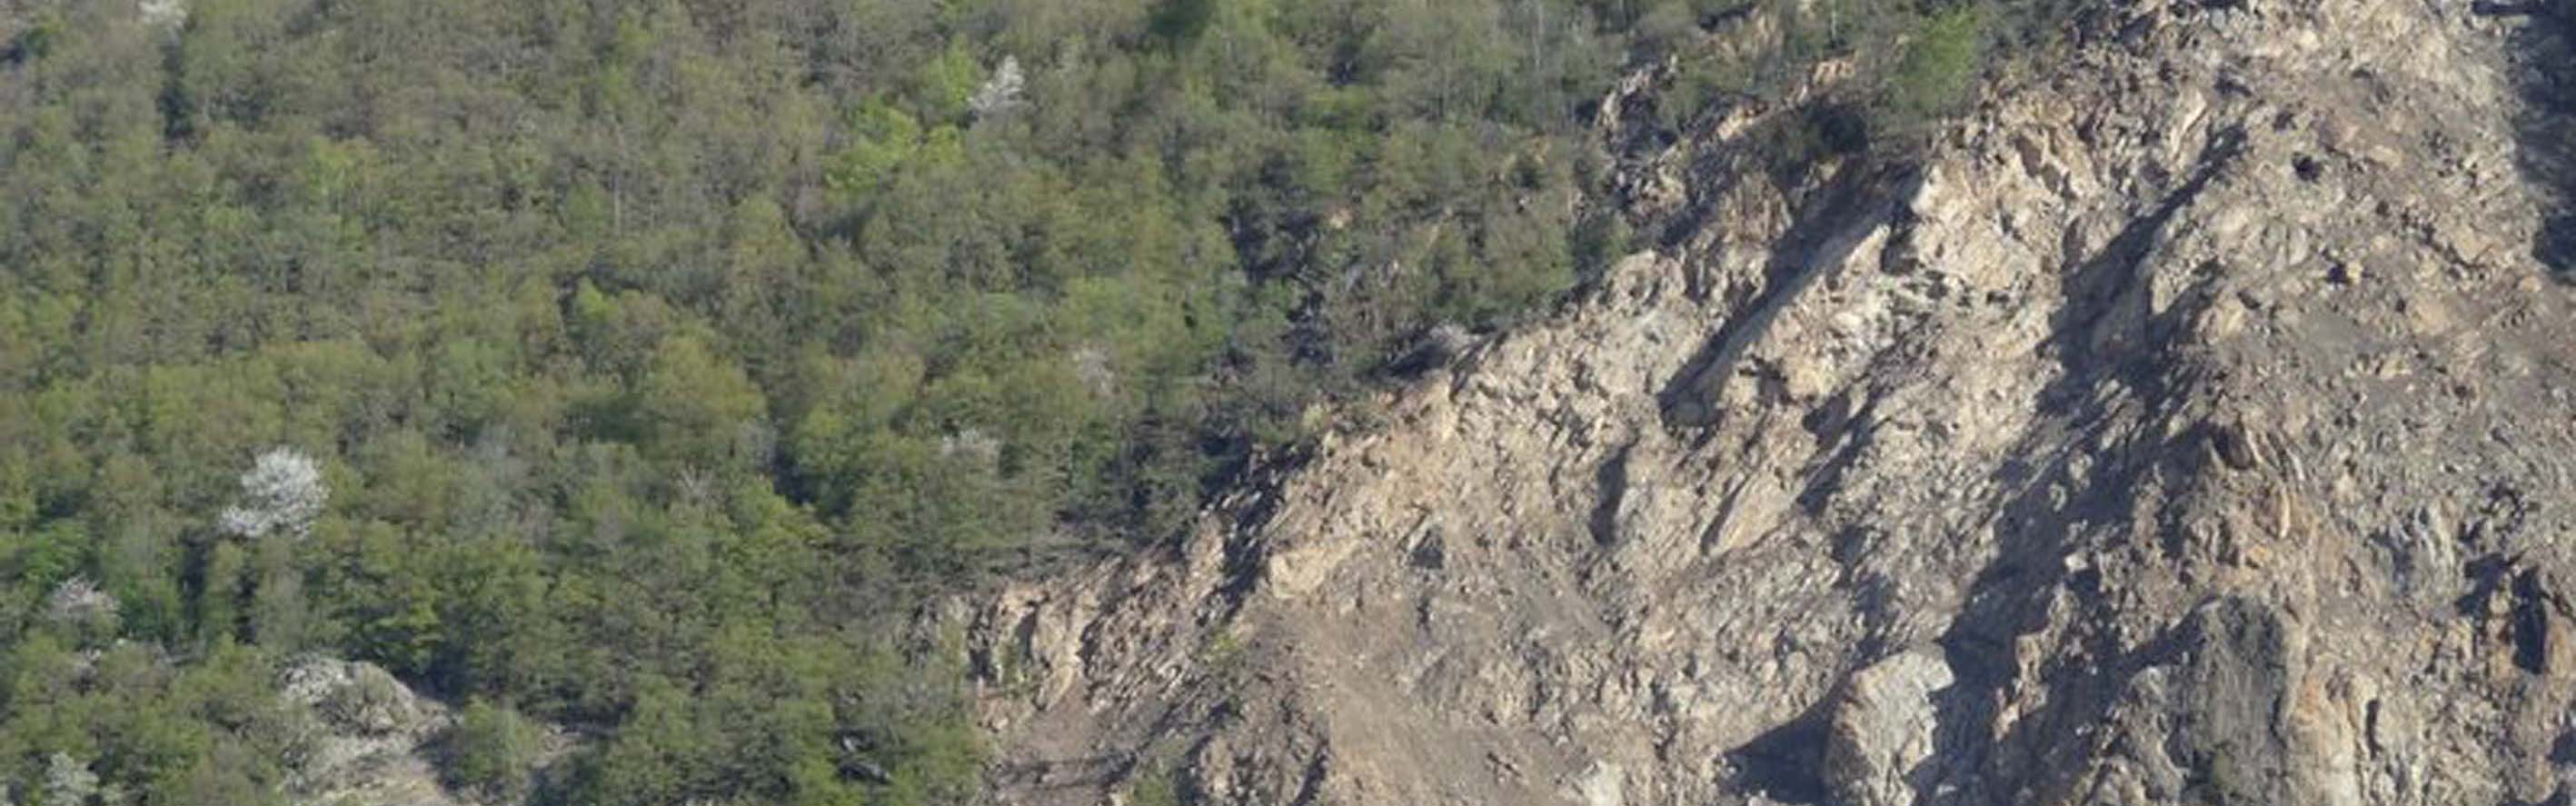 Séchilienne landslide: geological discontinuities at the top of the main scarp in 2016